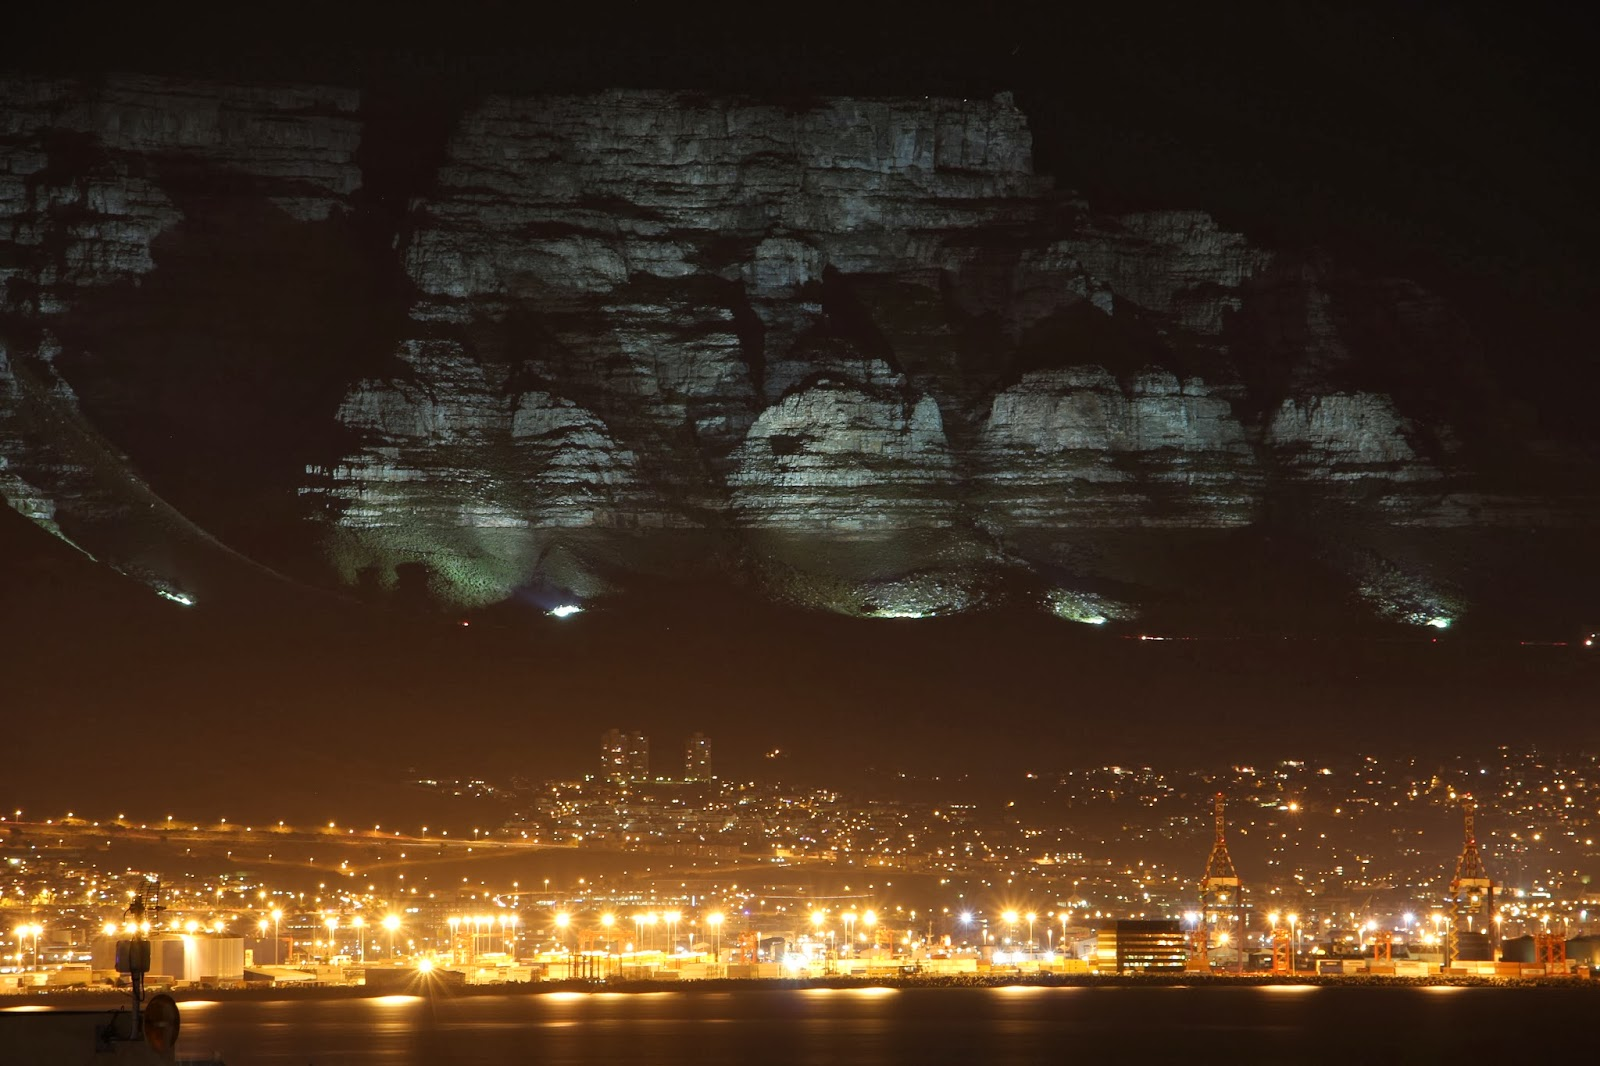 Canon EOS 700D Bulb Mode / Long Exposure Demonstration Table Mountain